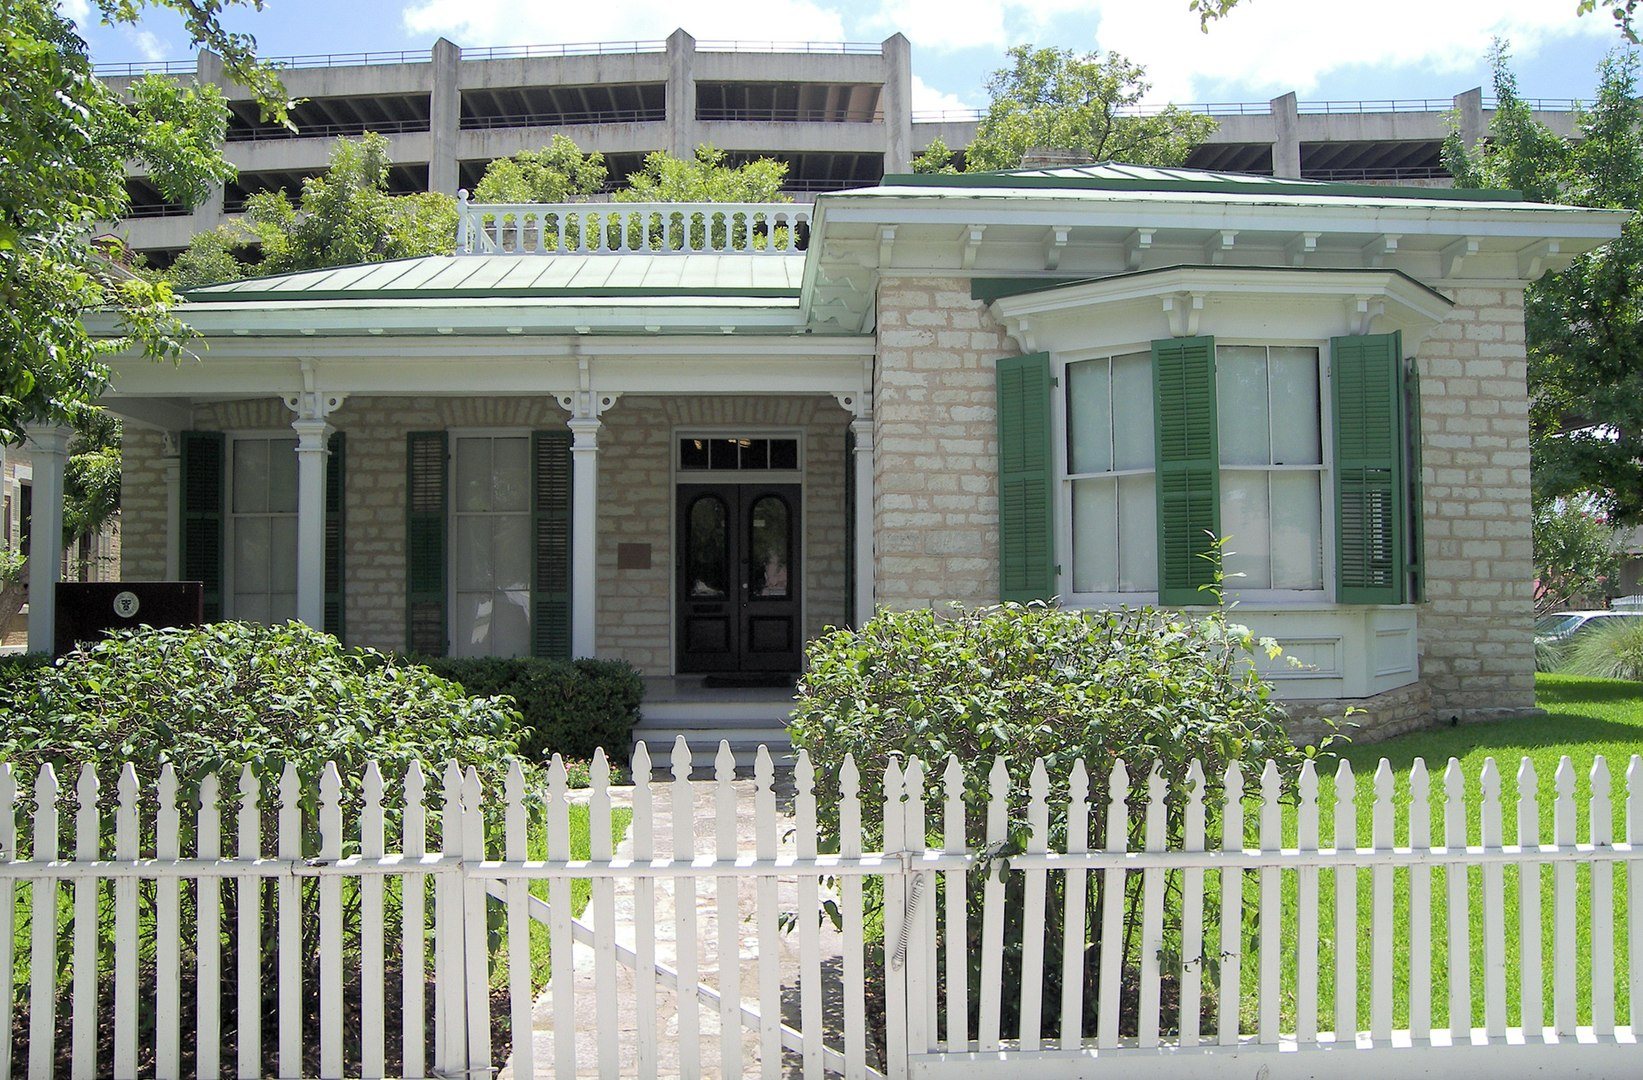 The Hirshfeld Cottage: Before building the mansion in 1885, the Hirshfeld family built the cottage on the same lot in 1873.